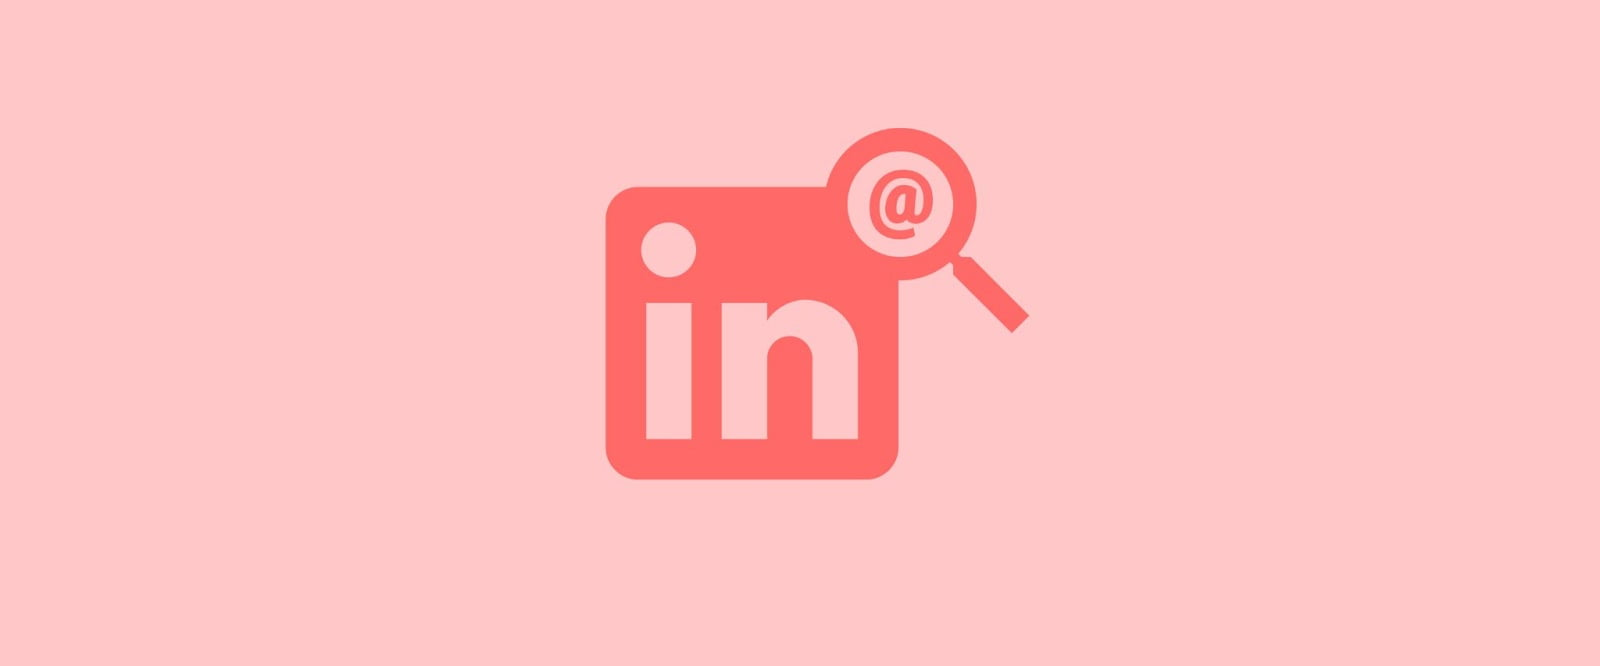 How to Find Email From LinkedIn